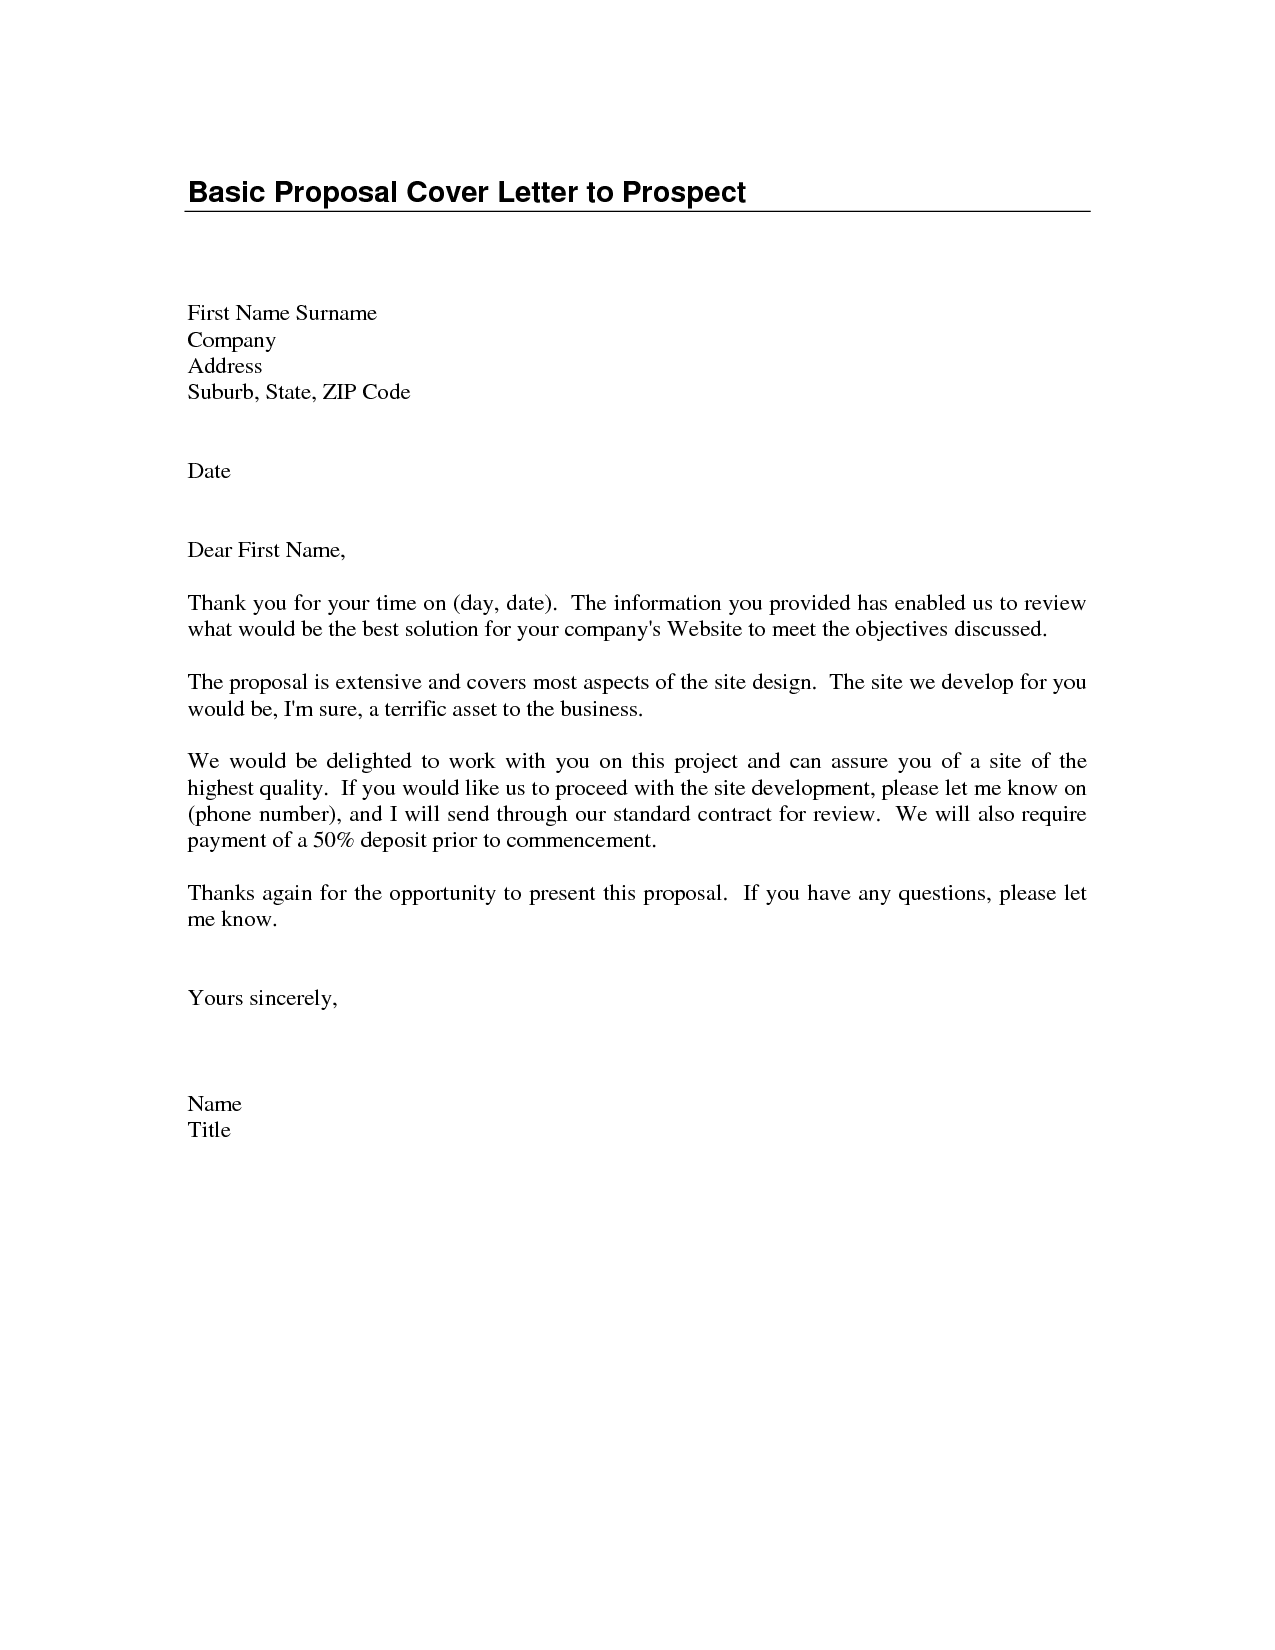 Basic cover letter sample basic cover letters free for Cover letter templte